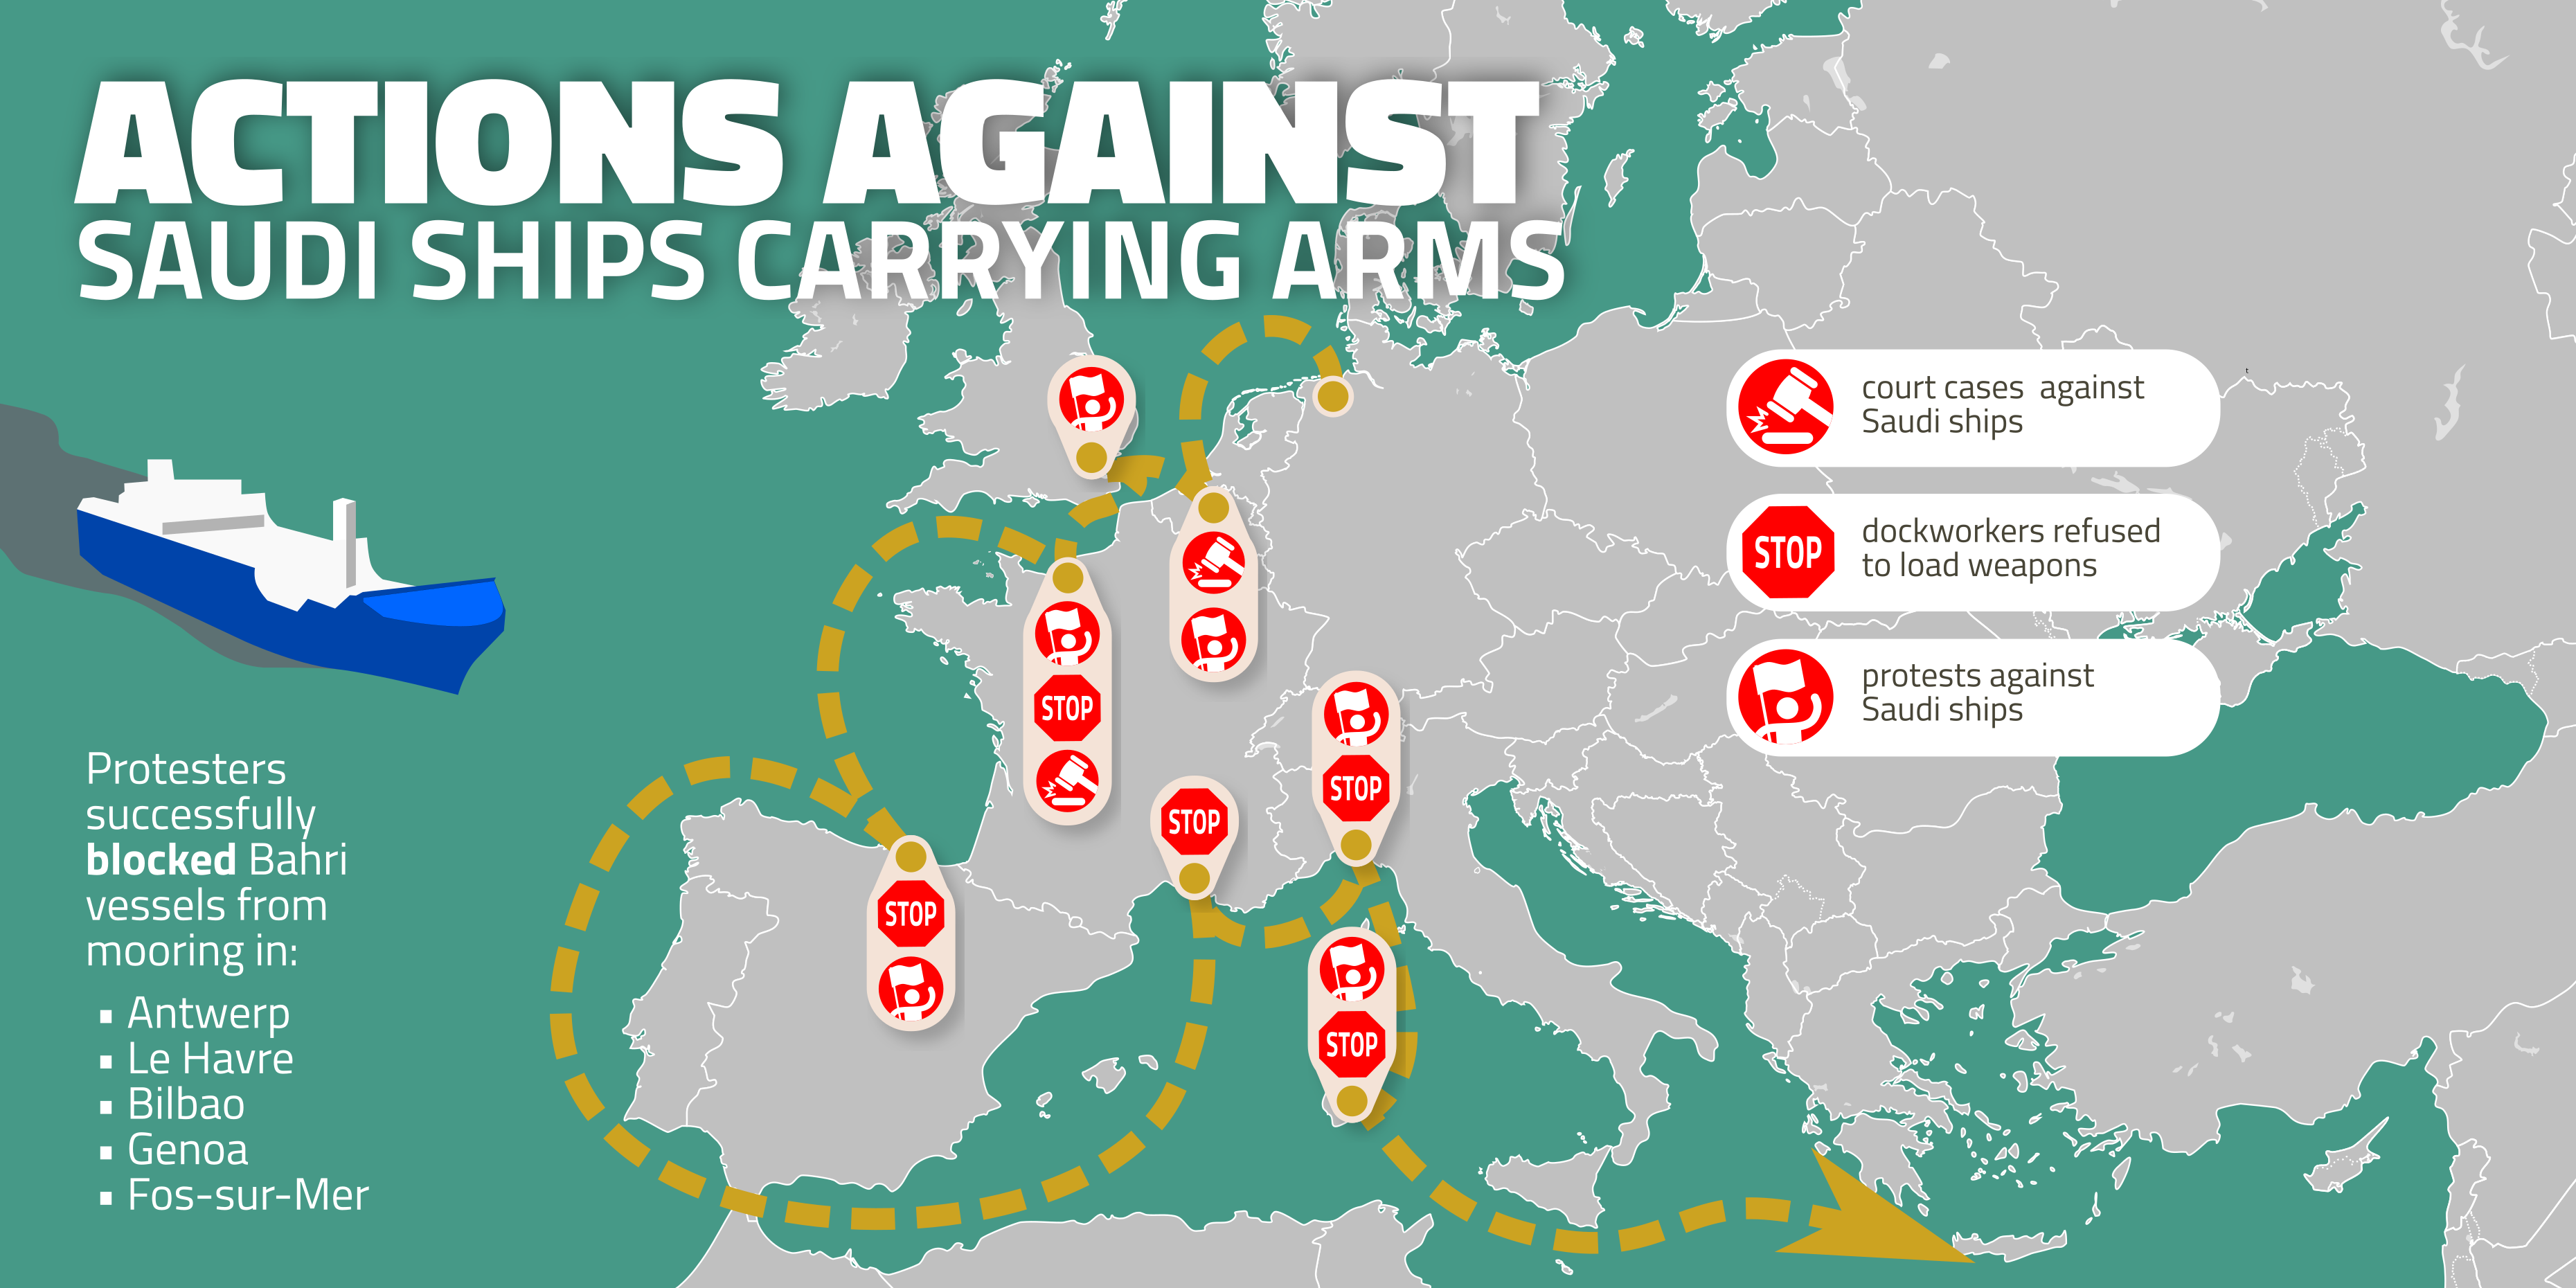 Actions against Saudi ships carrying arms